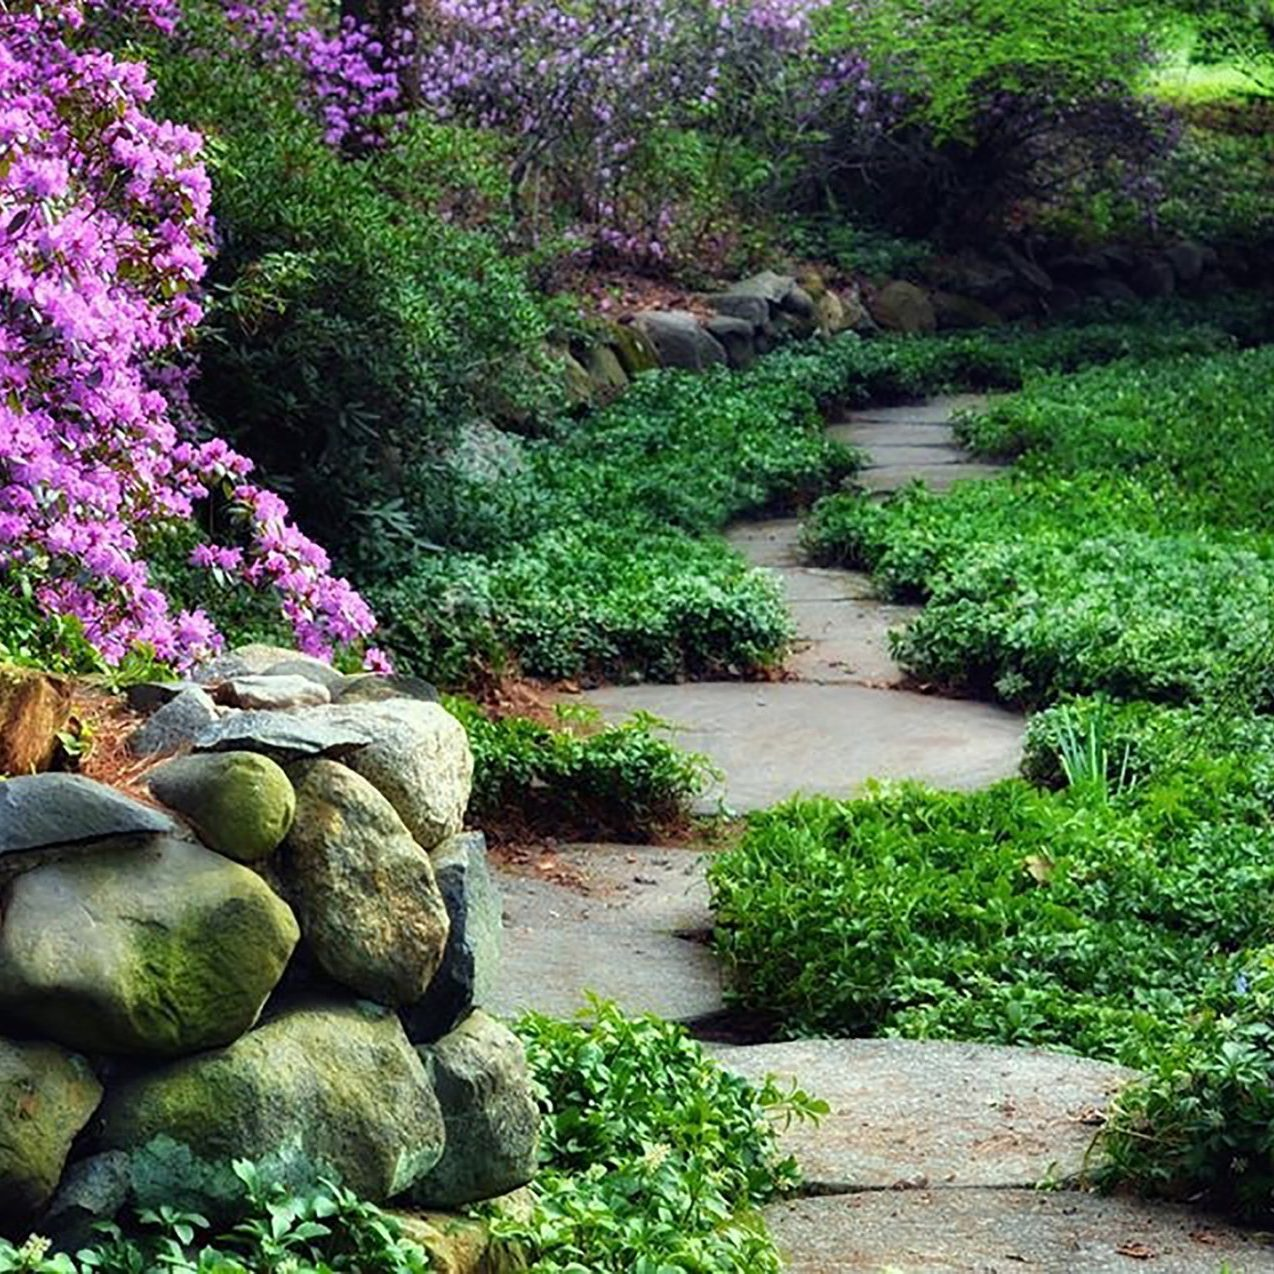 Paver path at Dow Gardens